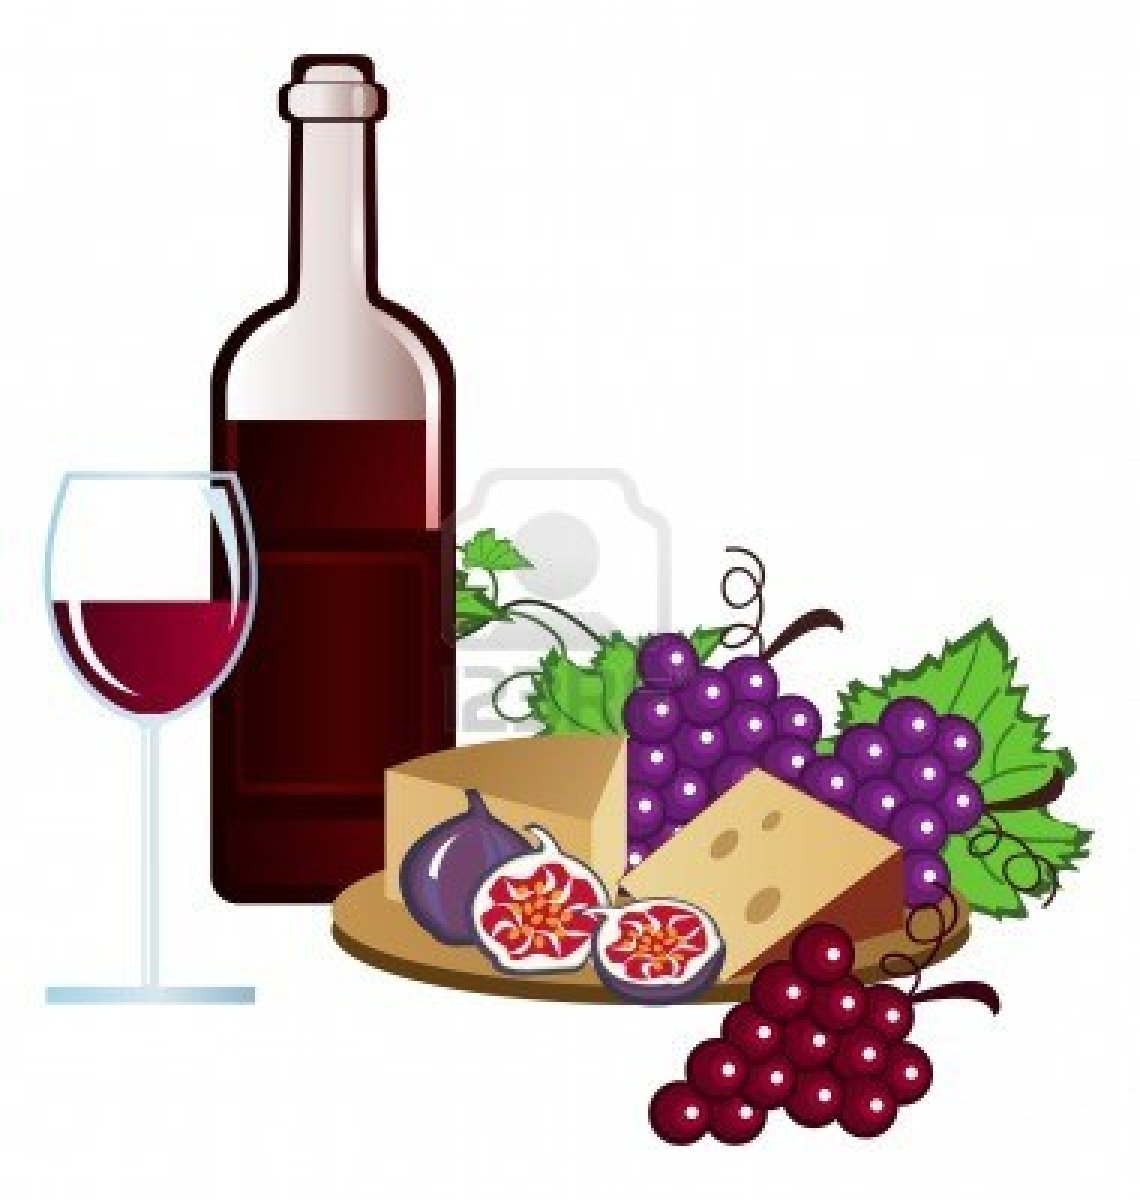 Wine And Cheese Clip Art Viewing Gallery-Wine And Cheese Clip Art Viewing Gallery-7